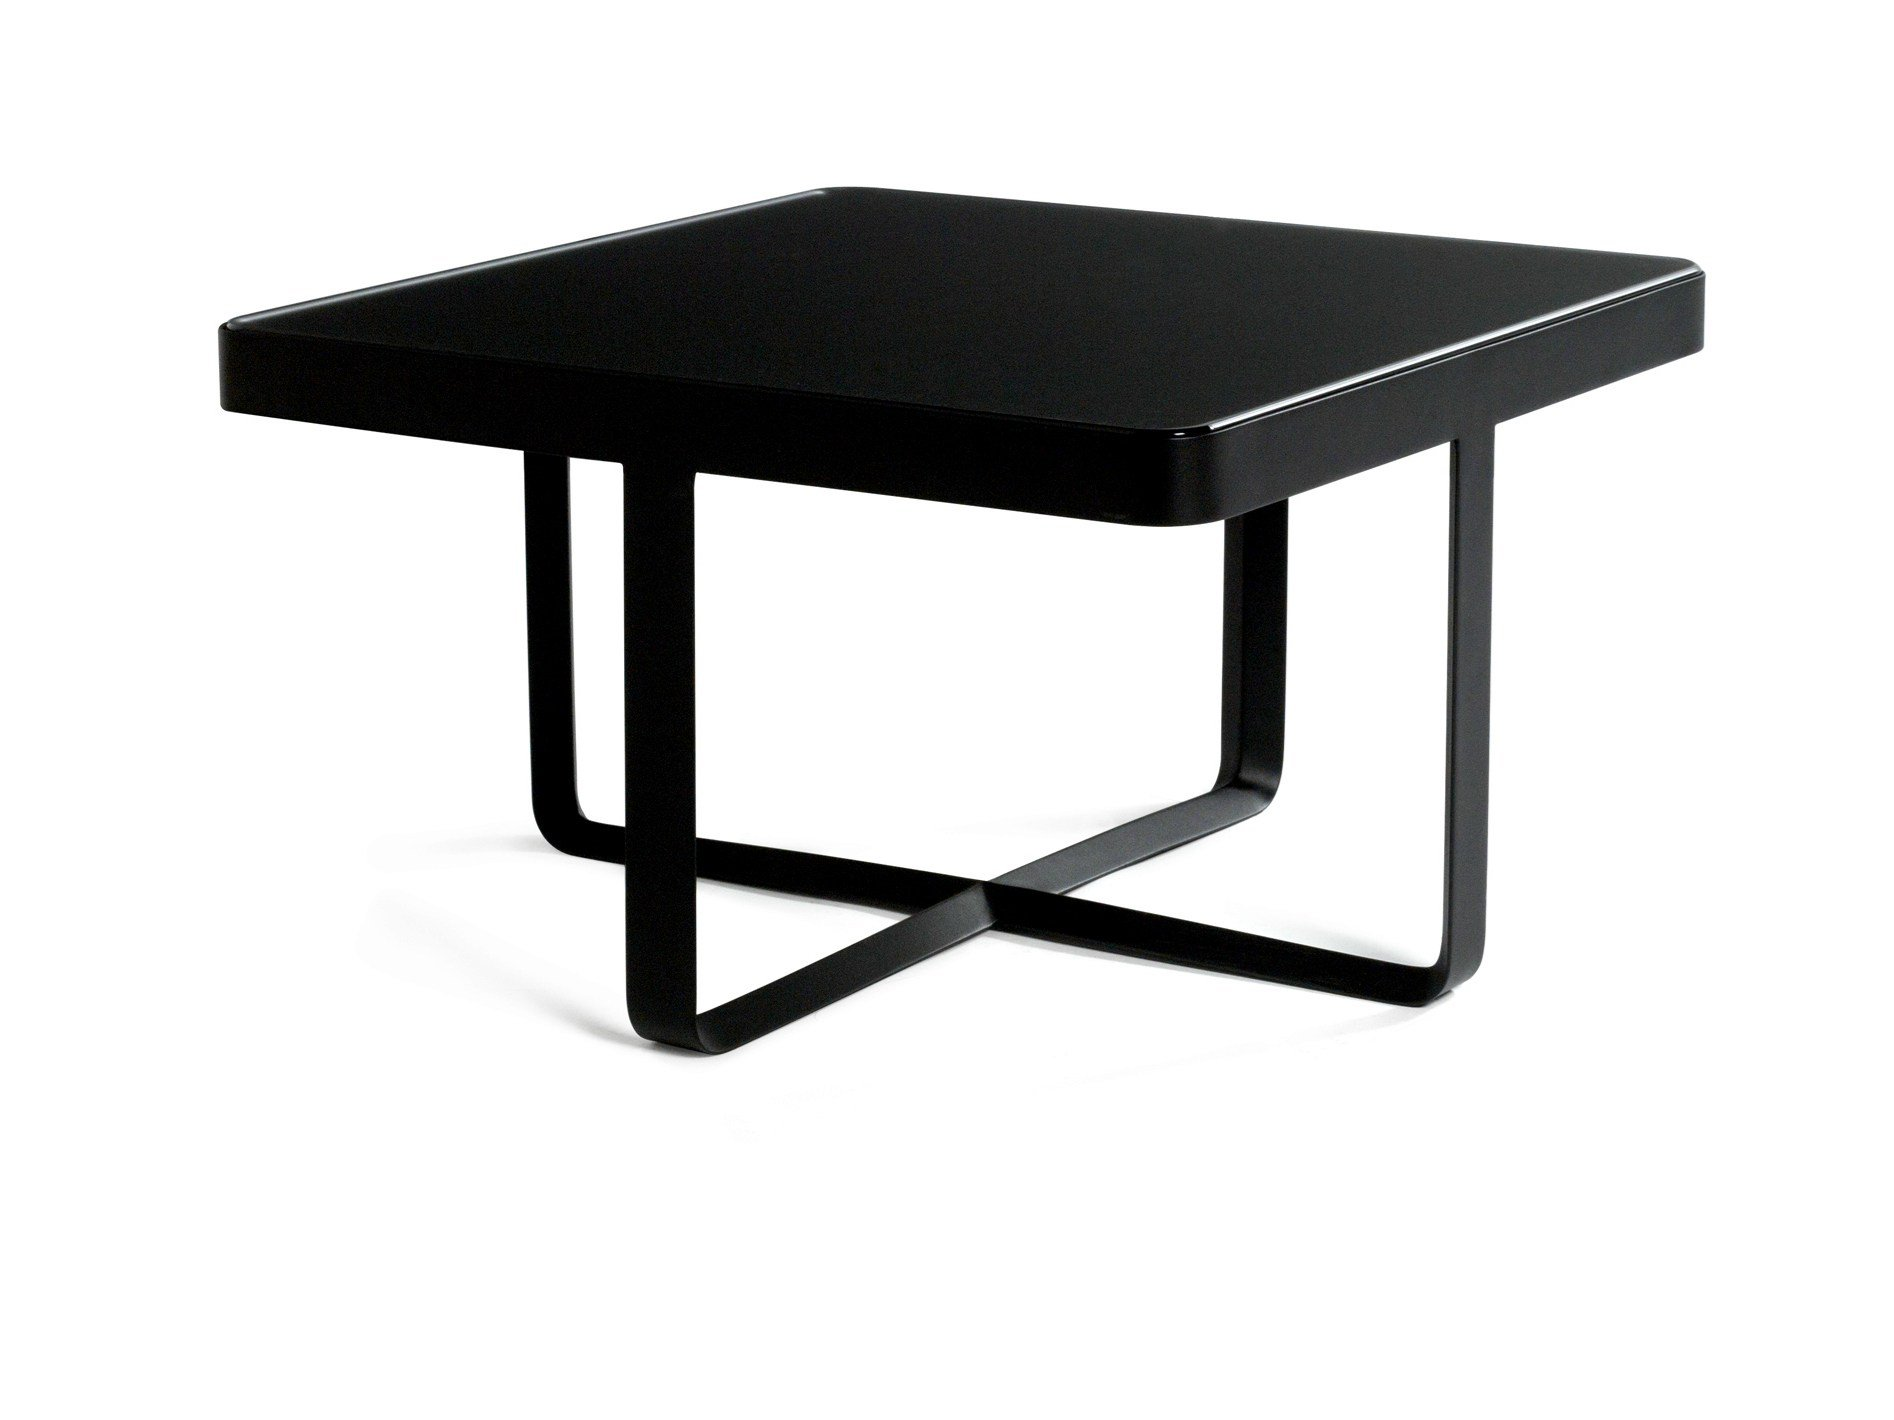 LOW SQUARE GARDEN SIDE TABLE COFFEE TABLE NEUTRA COLLECTION BY TRIB